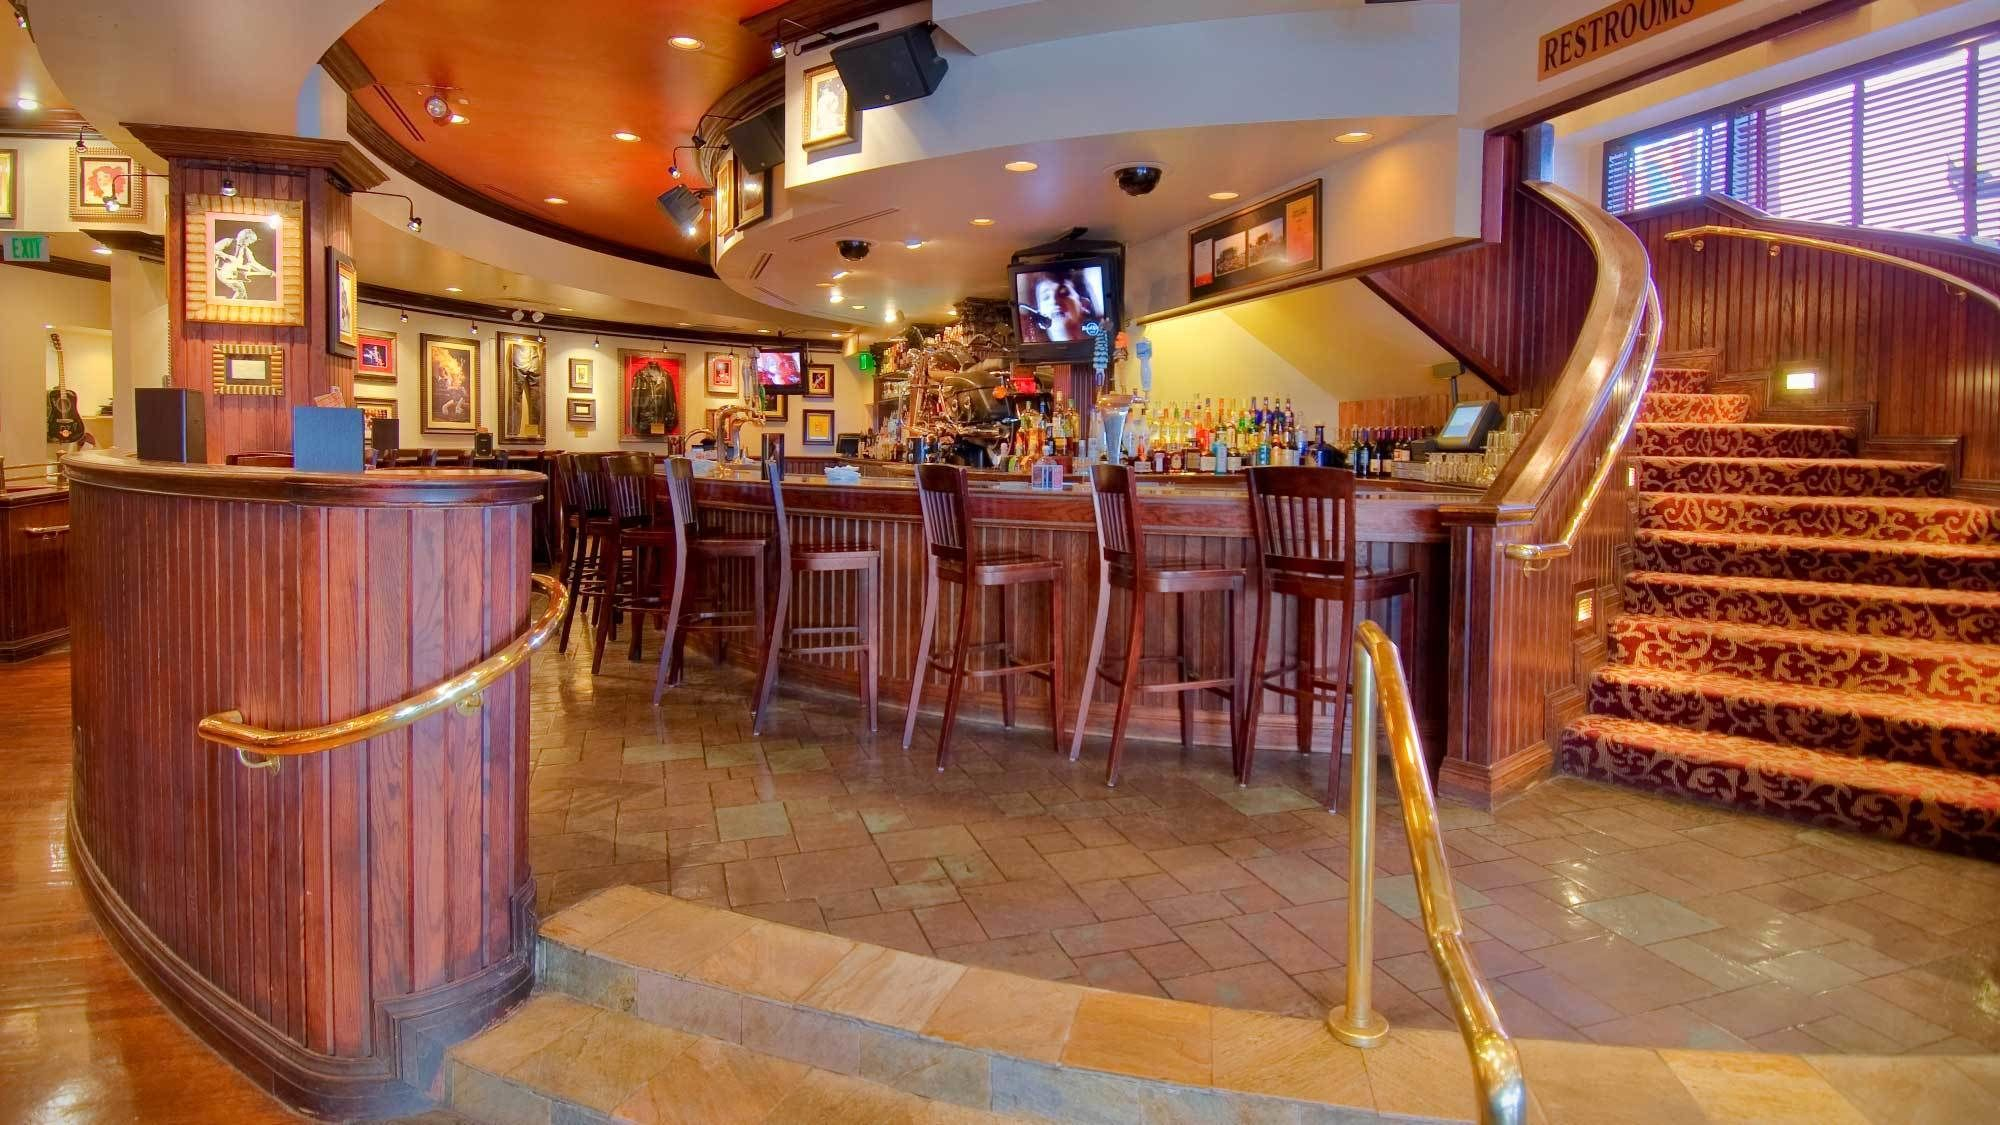 Bar seating at the Hard Rock Cafe in Denver